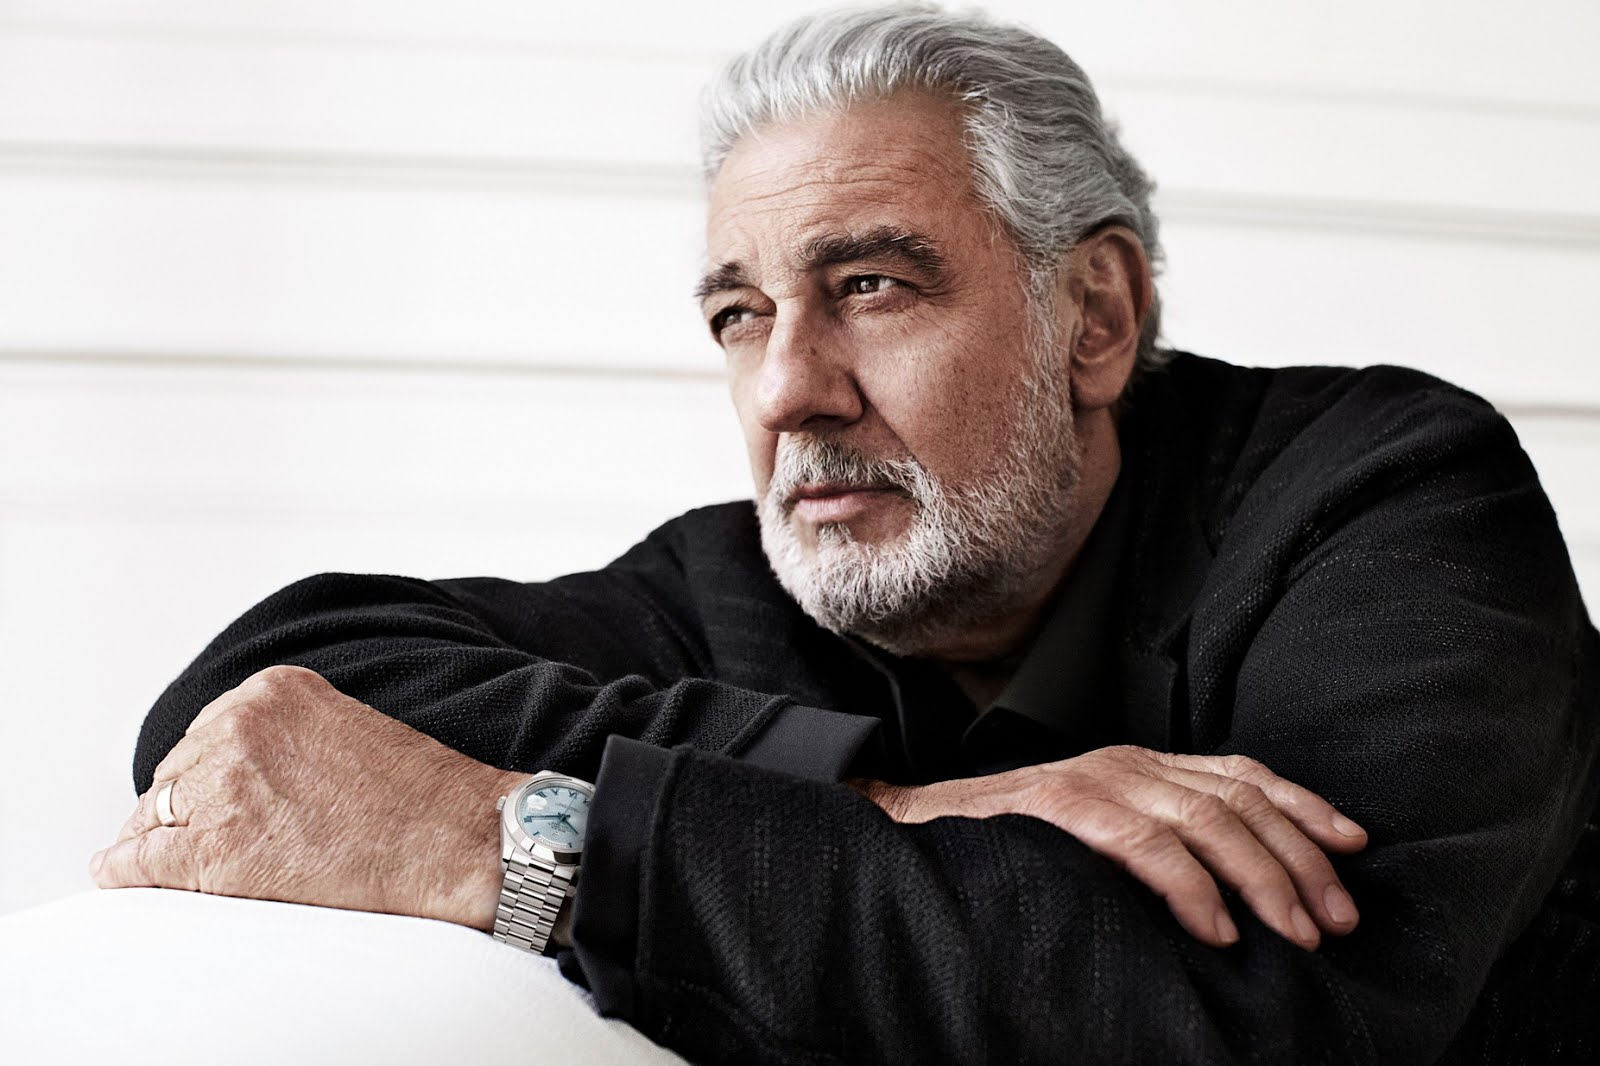 Placido Domingo and others have a Day-Date, its clear that musicians wear Rolex